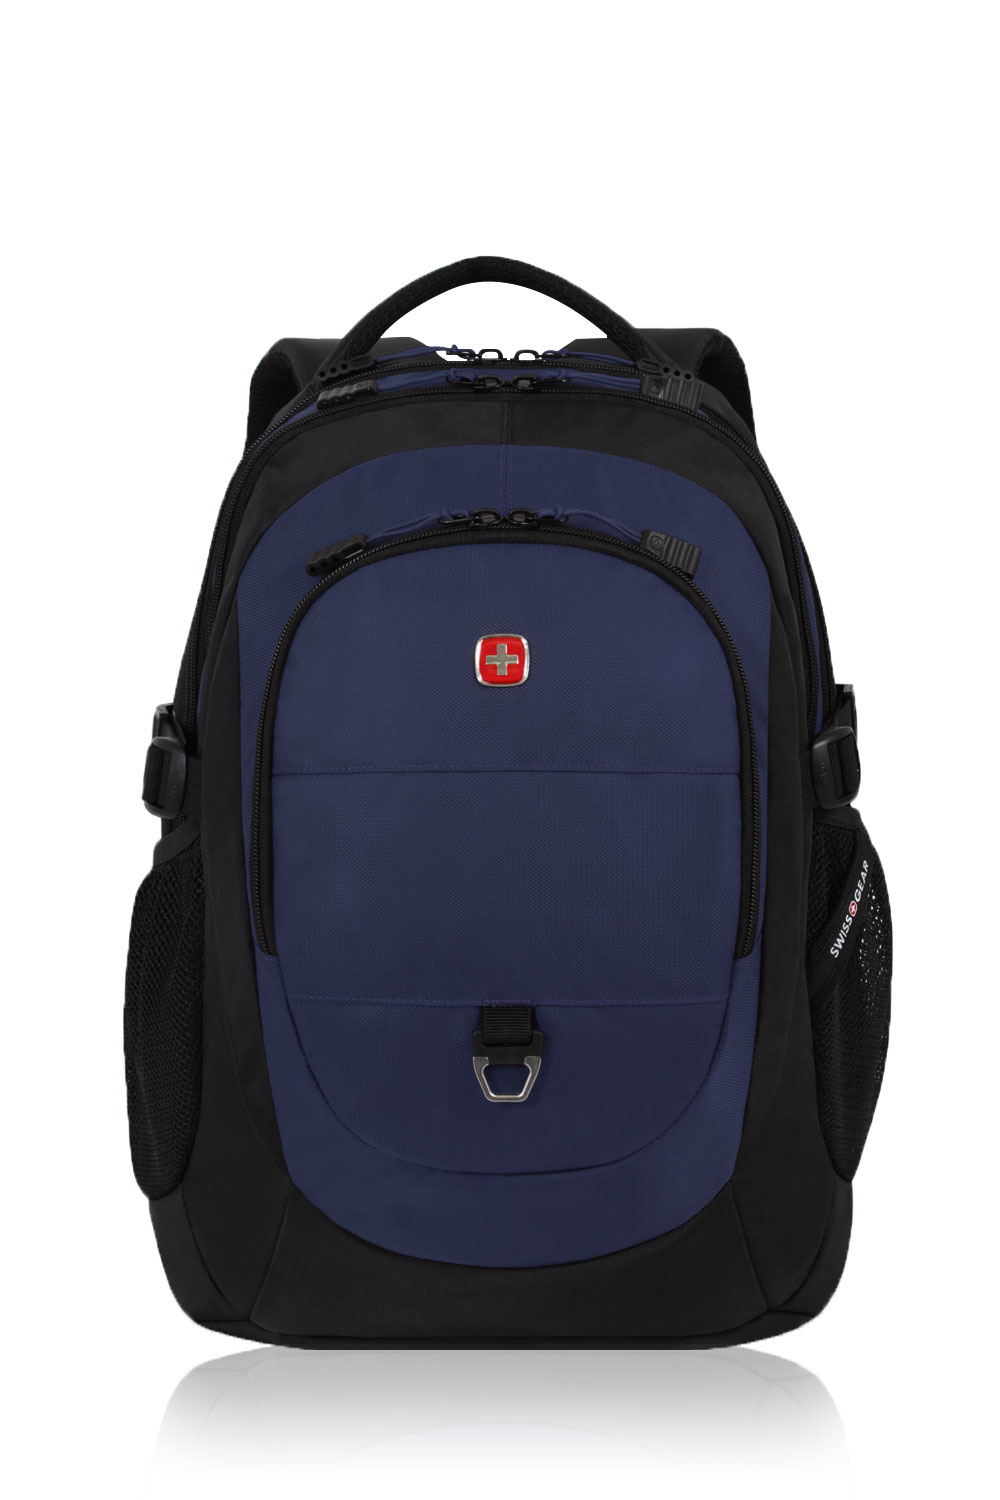 Swissgear 6697 Backpack Blue Silver